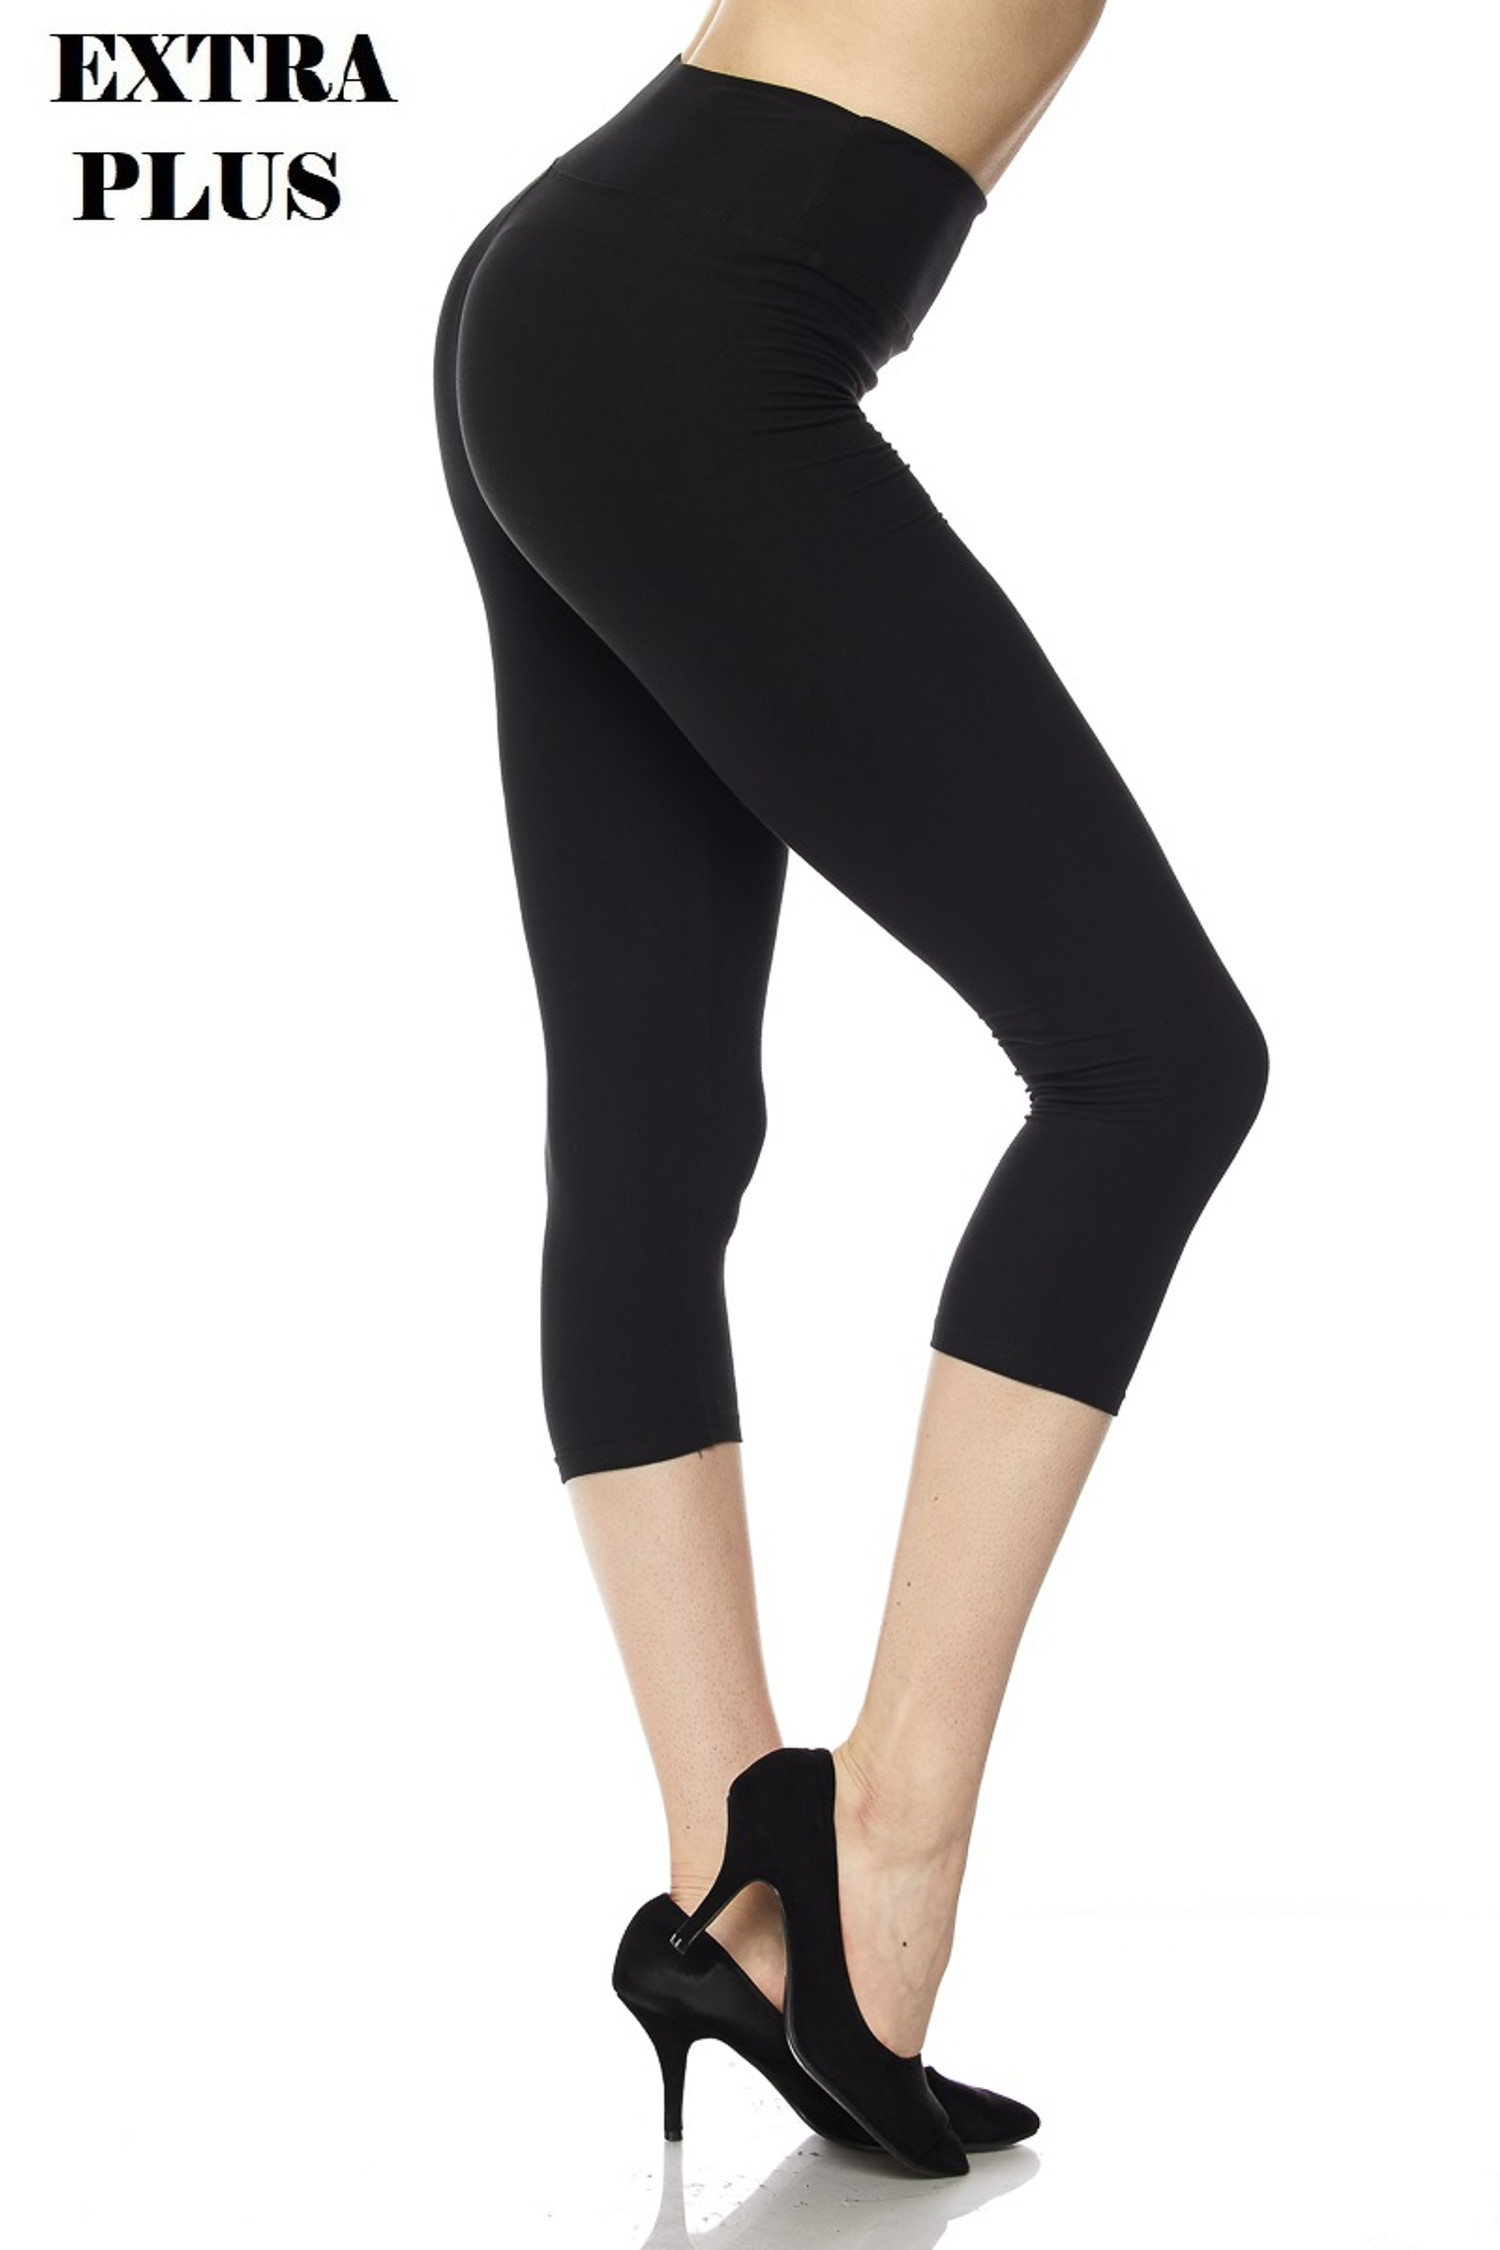 Brushed  High Waisted Plus Size Basic Solid Capris - 3 Inch - 3X-5X